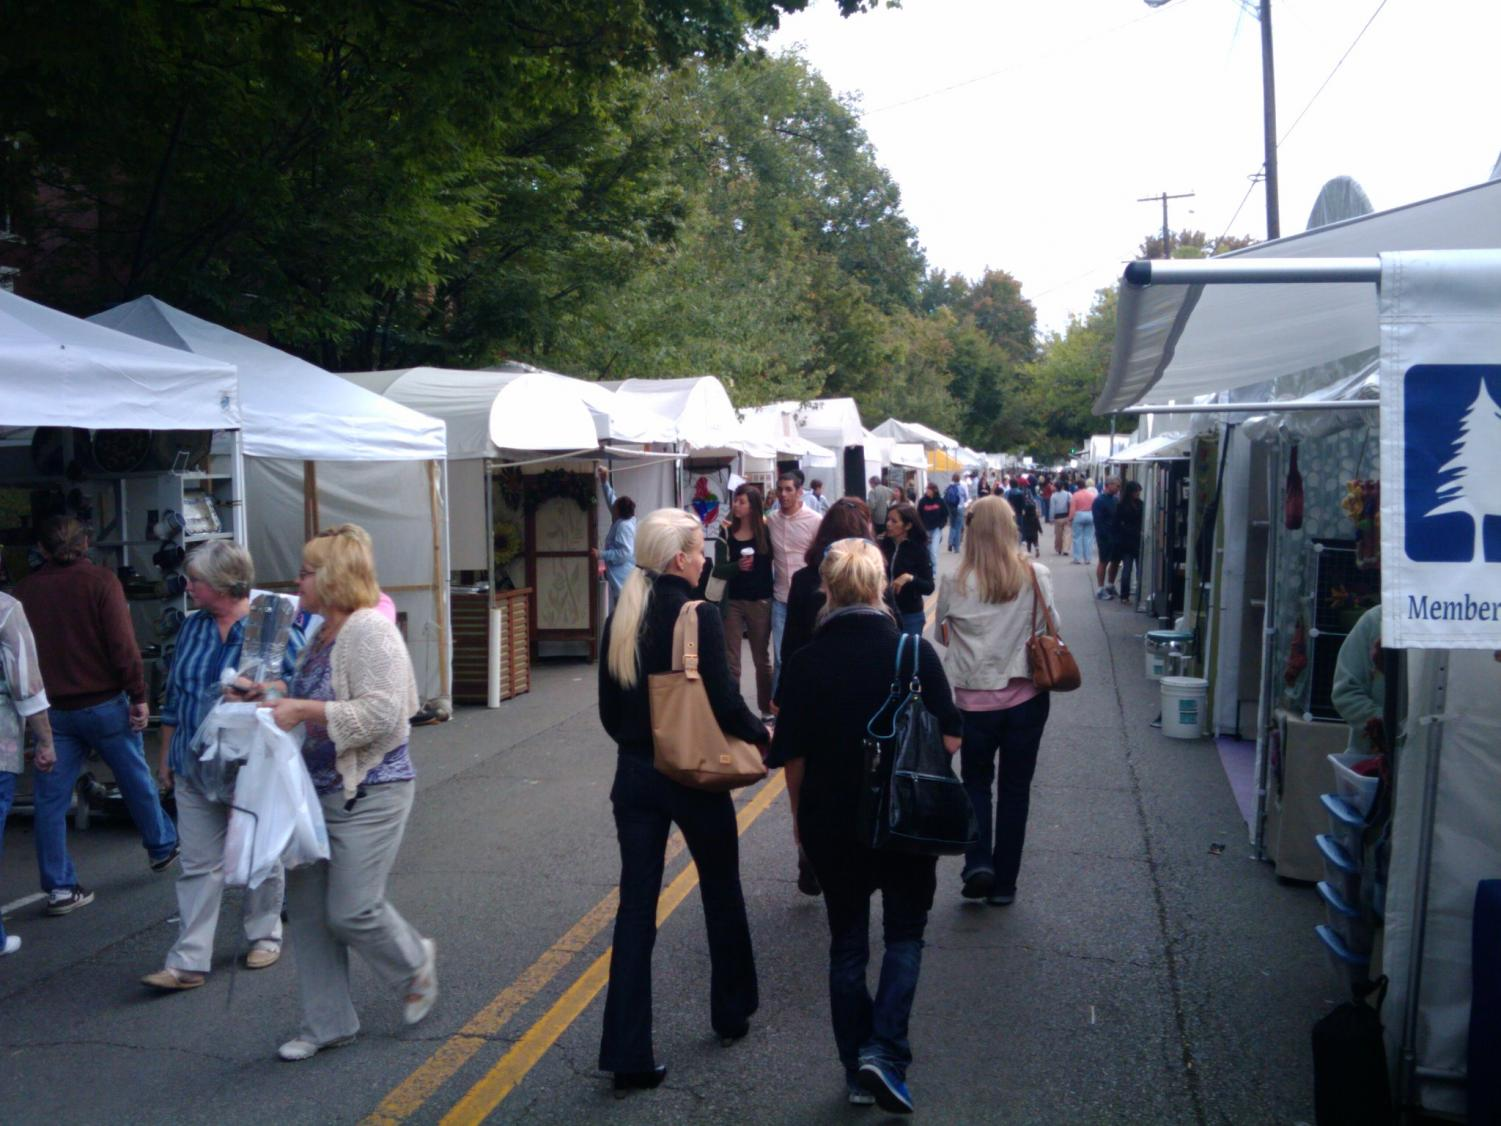 Visitors at the St. James Art Show peruse booths featuring with paintings, sculptures and other crafts.